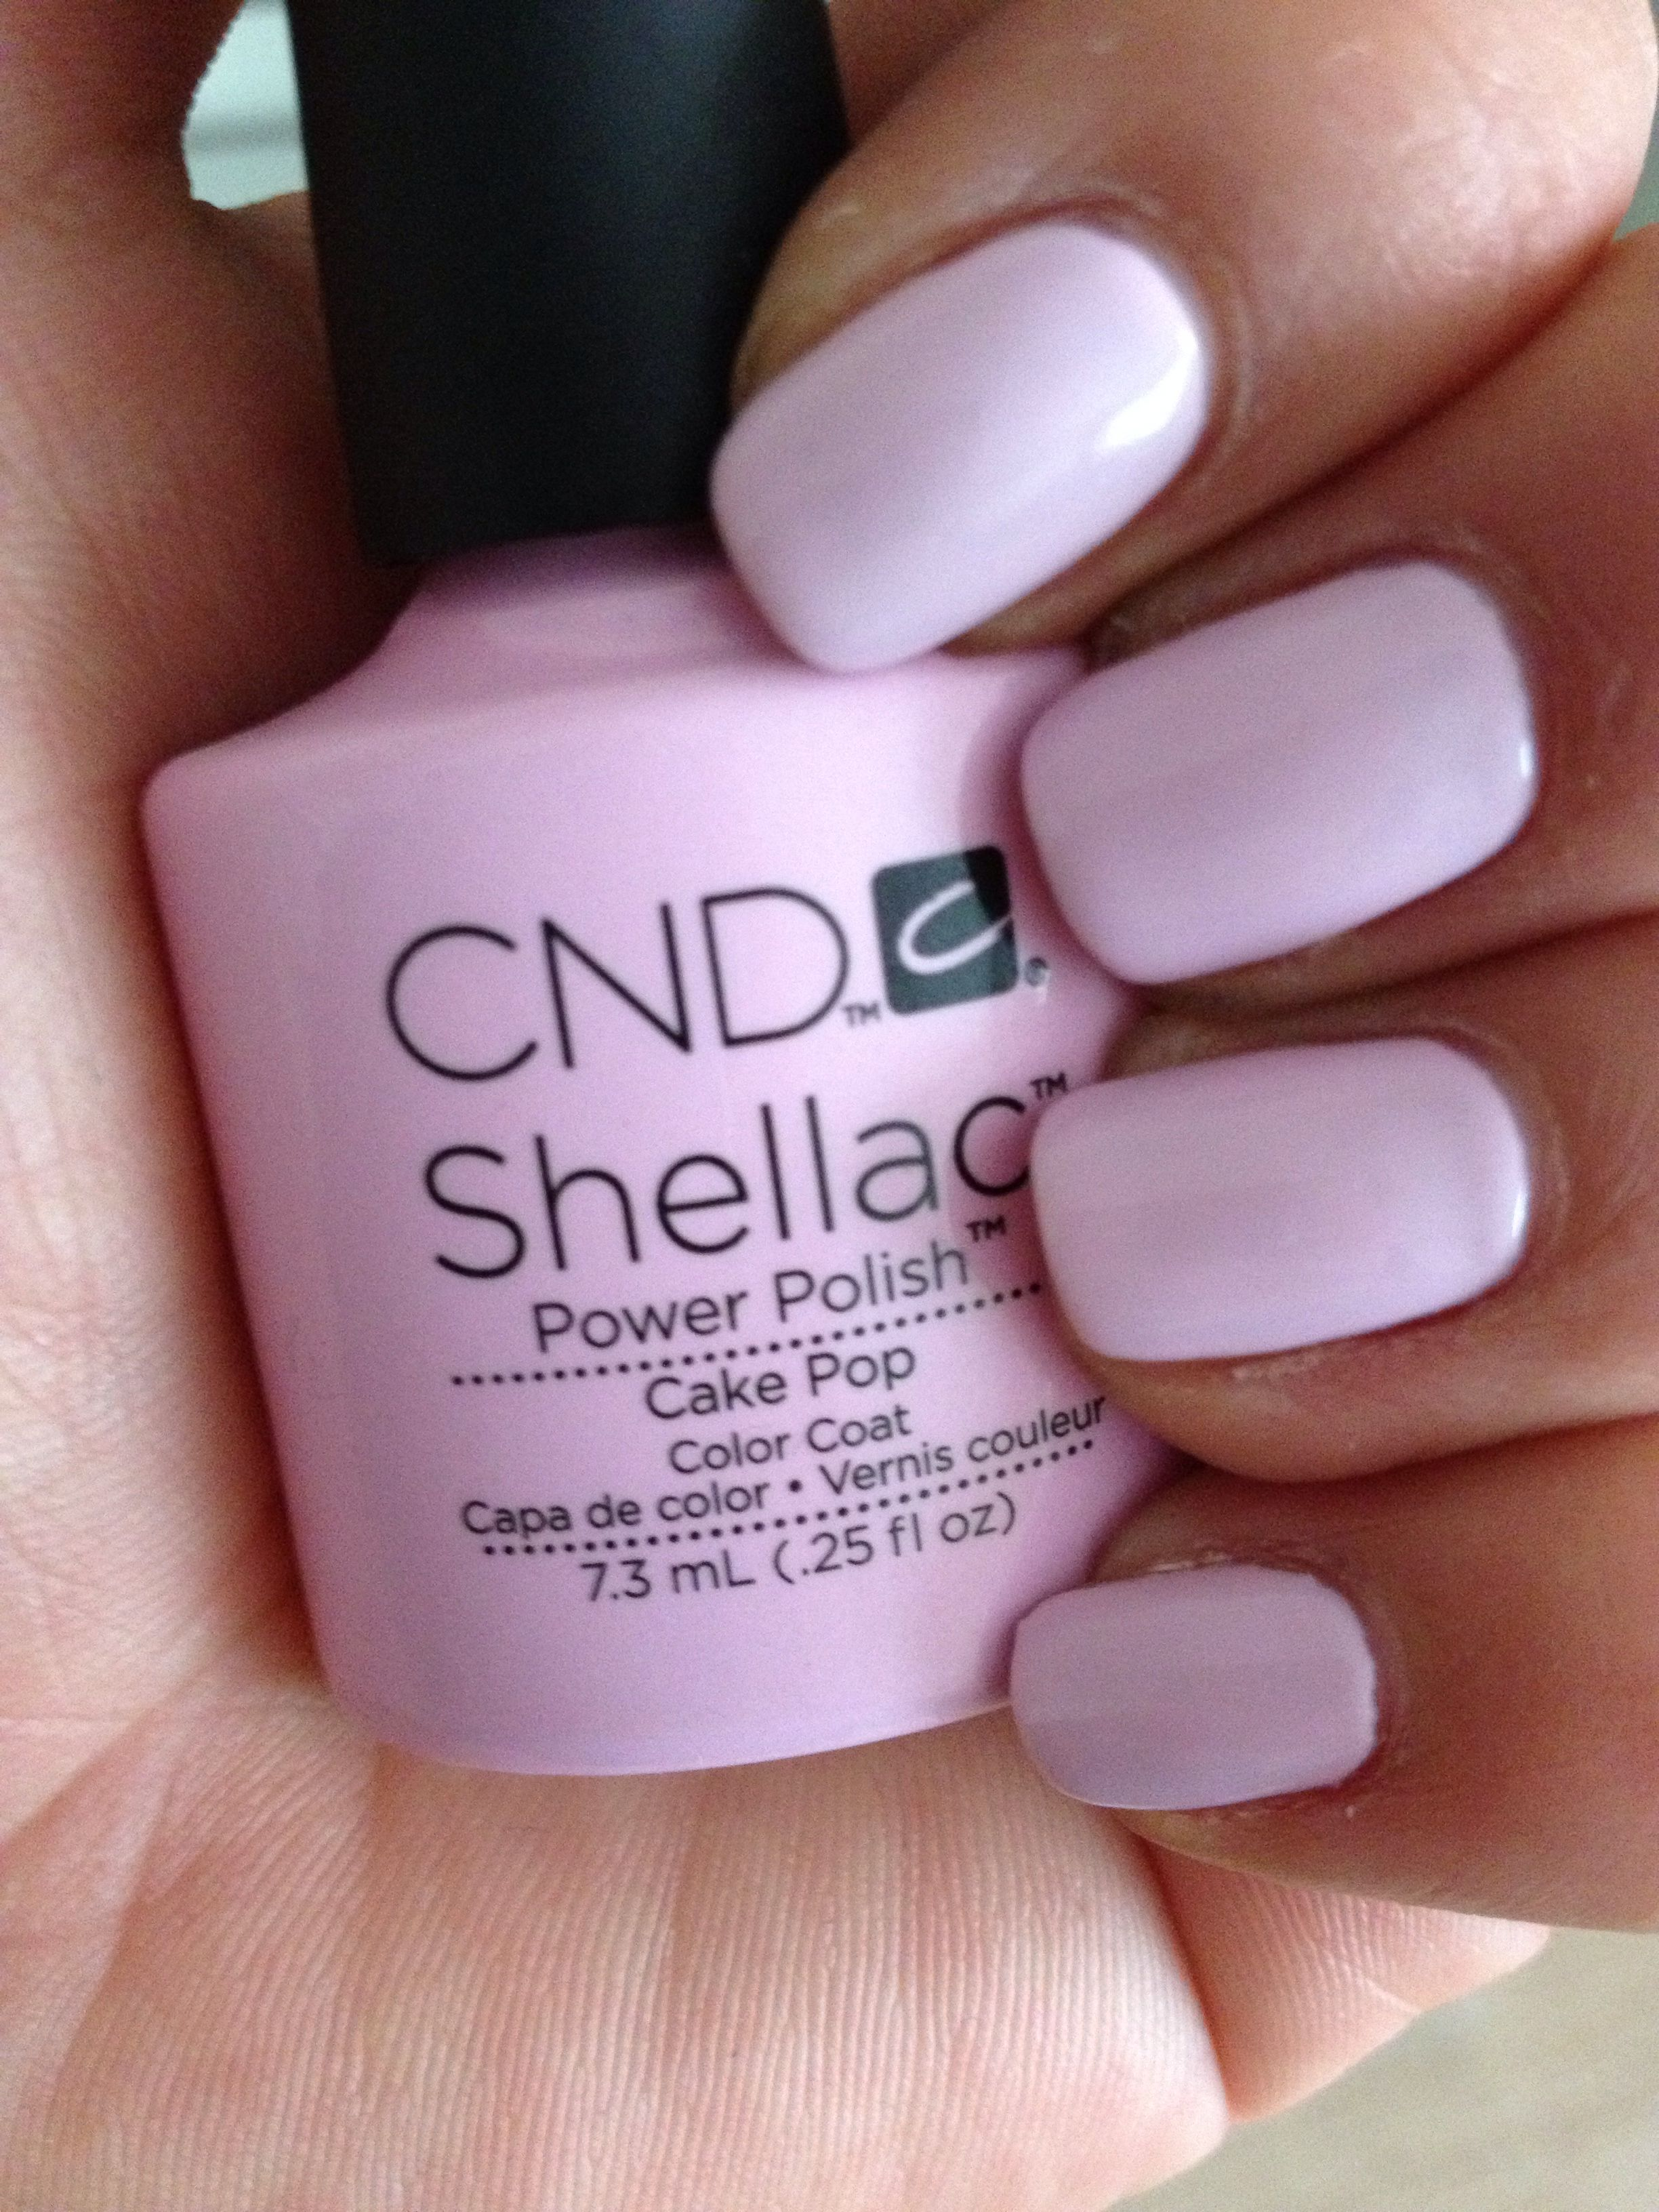 Cake Pop Cnd Shellac Pastell Nails